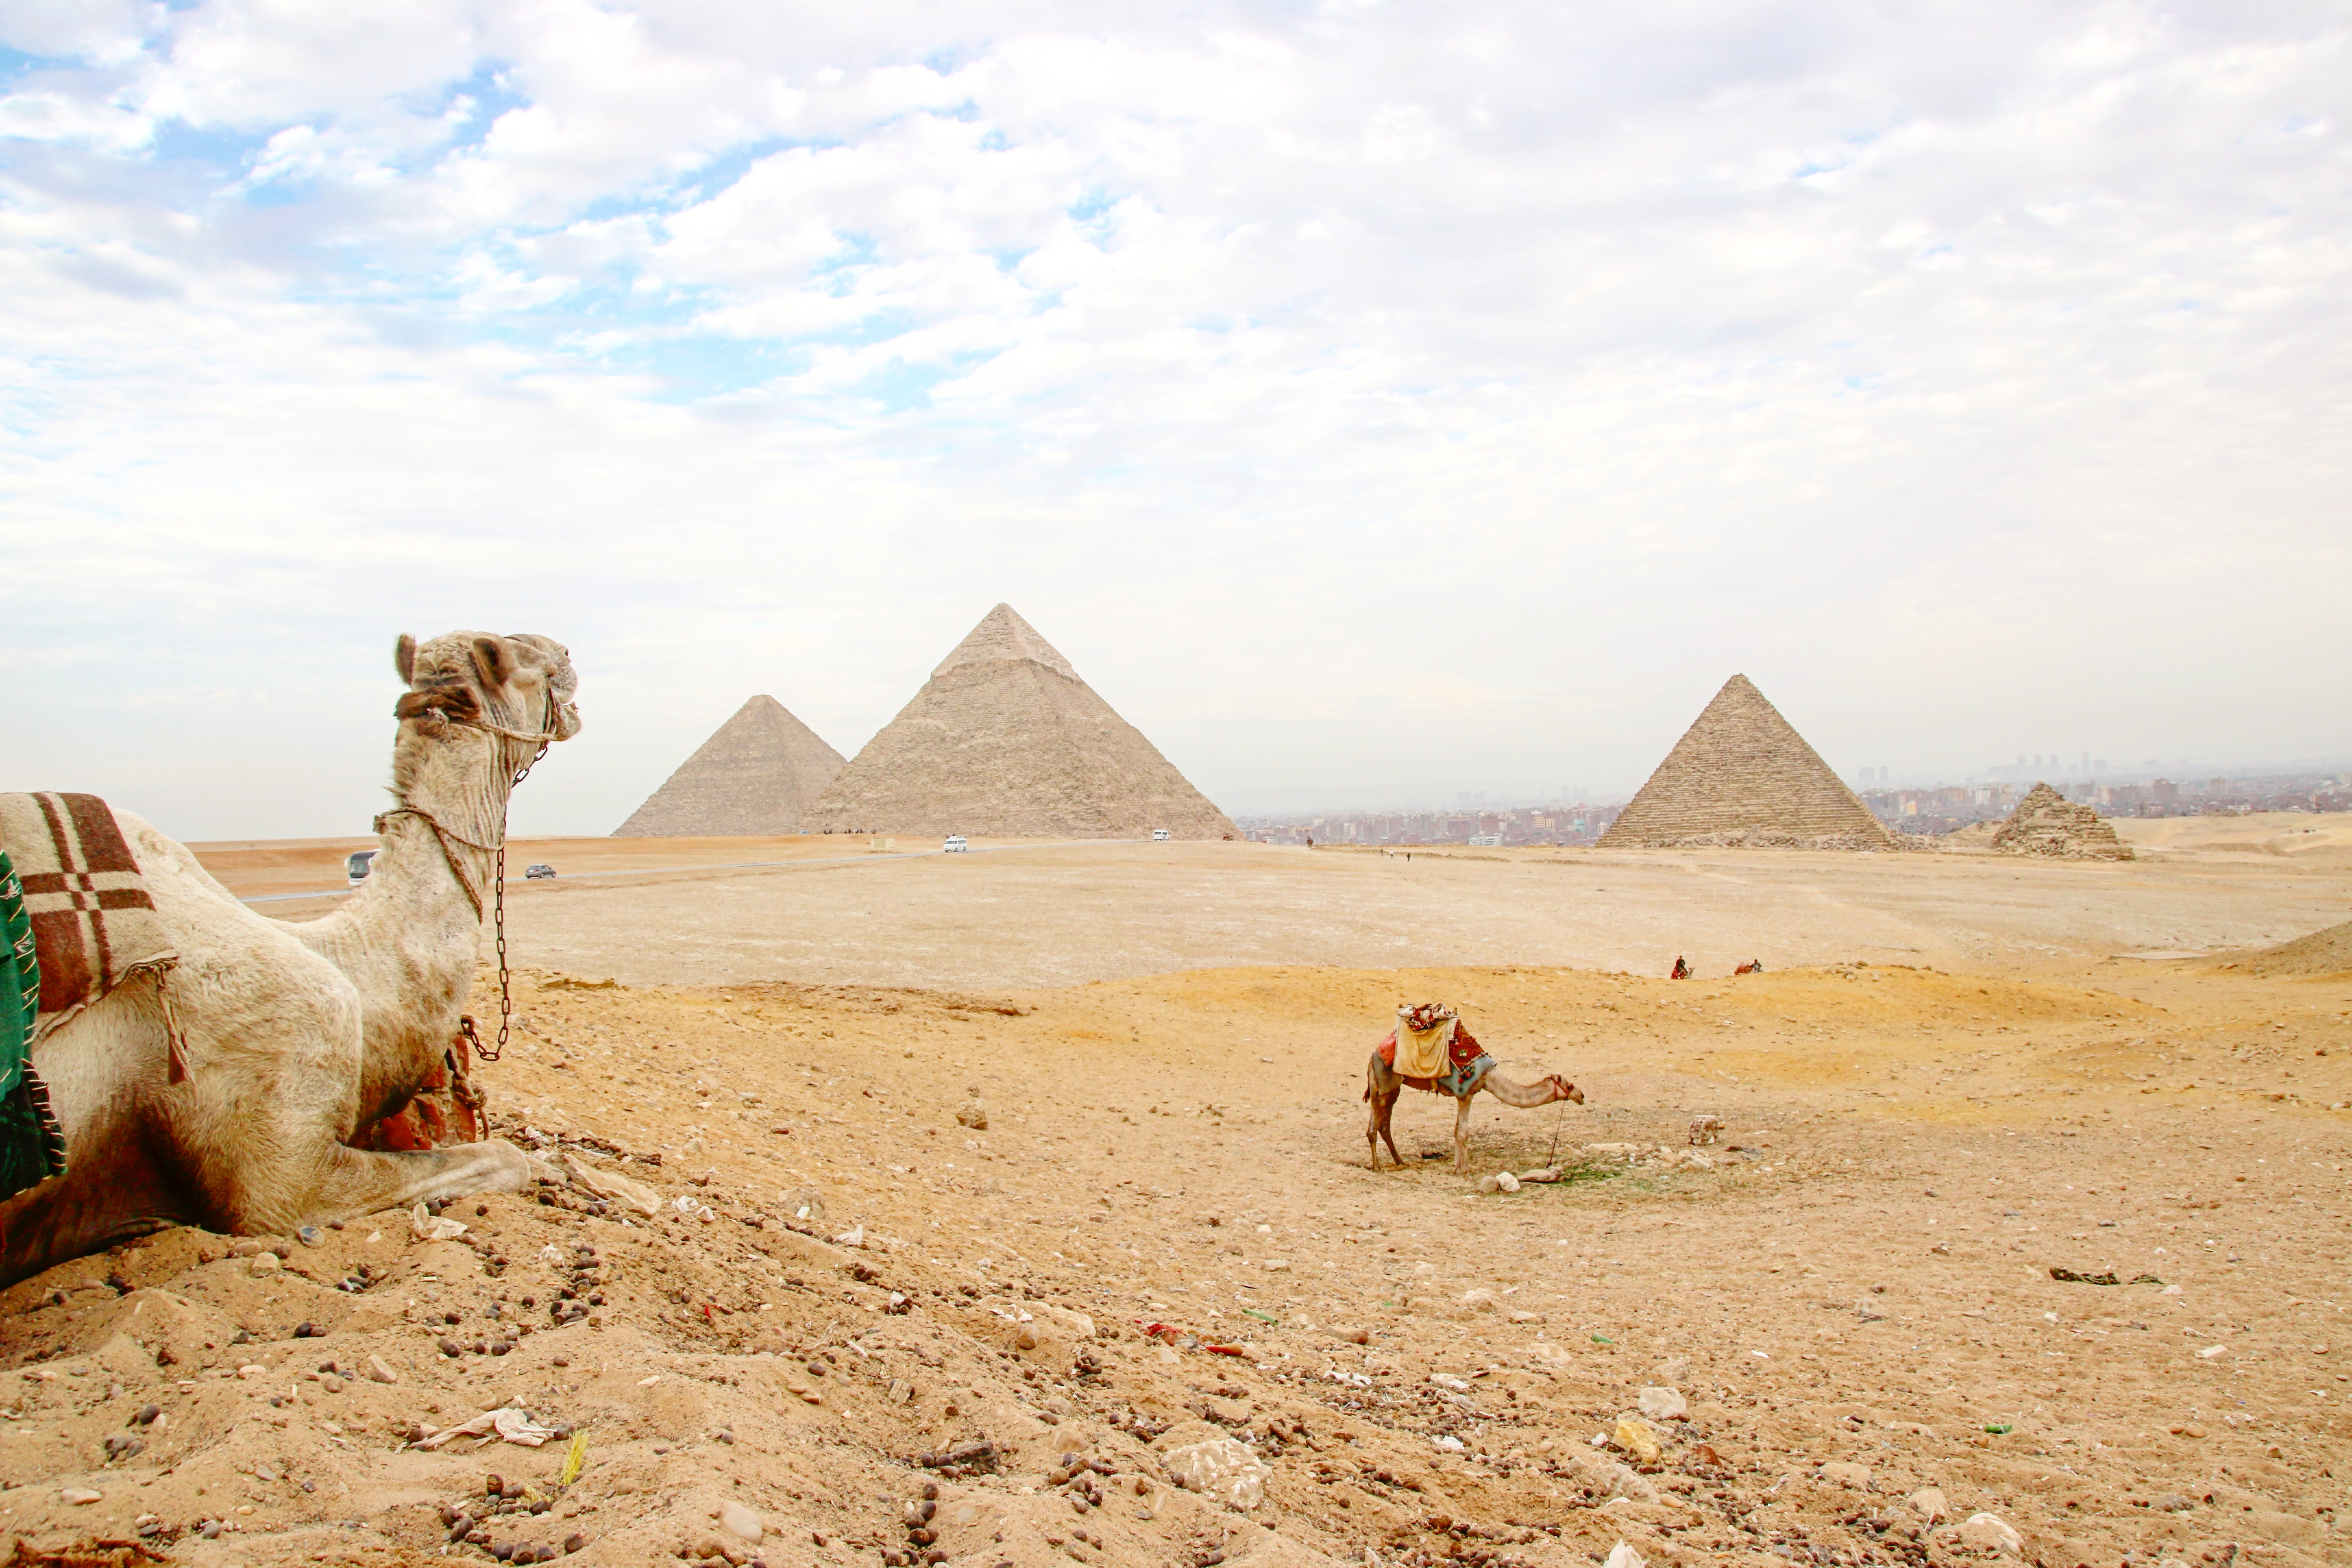 How to spend a day (or more) at the pyramids